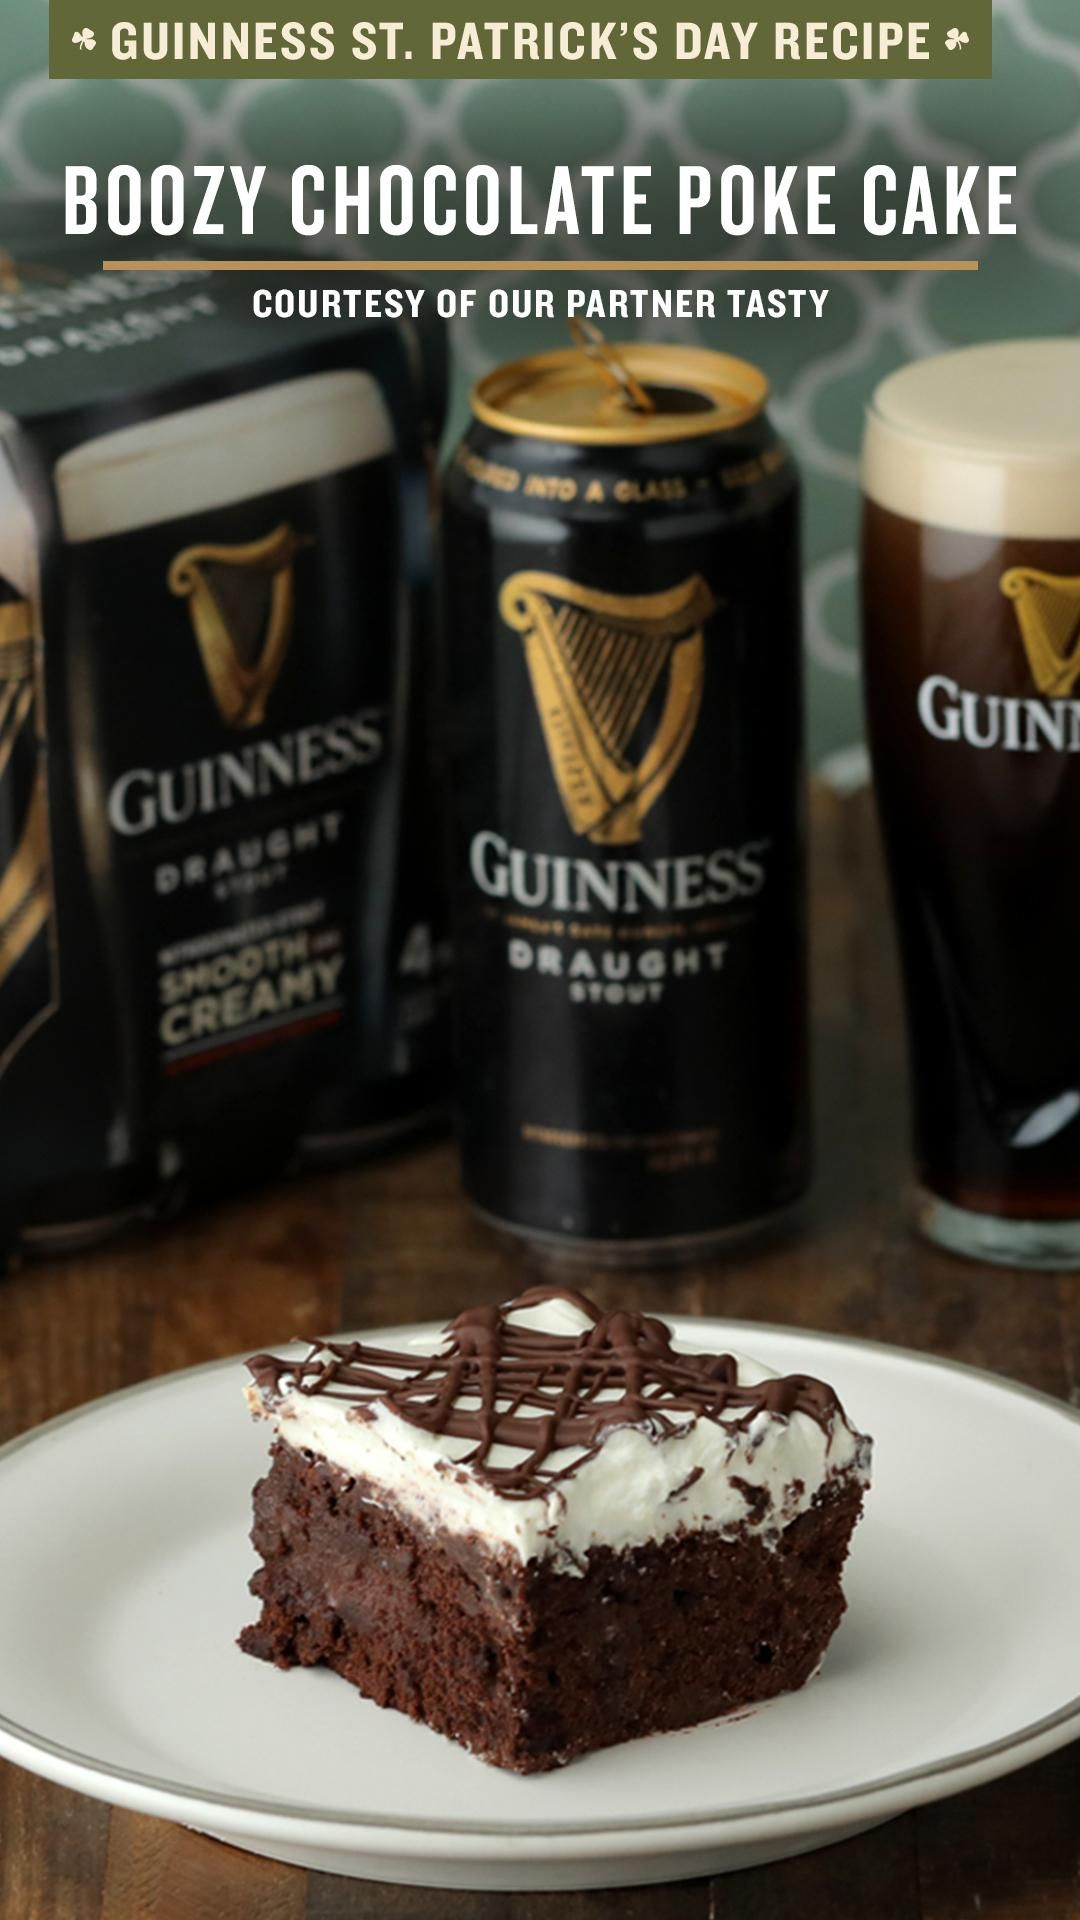 Guinness St. Patrick's Day Recipe: Boozy Chocolate